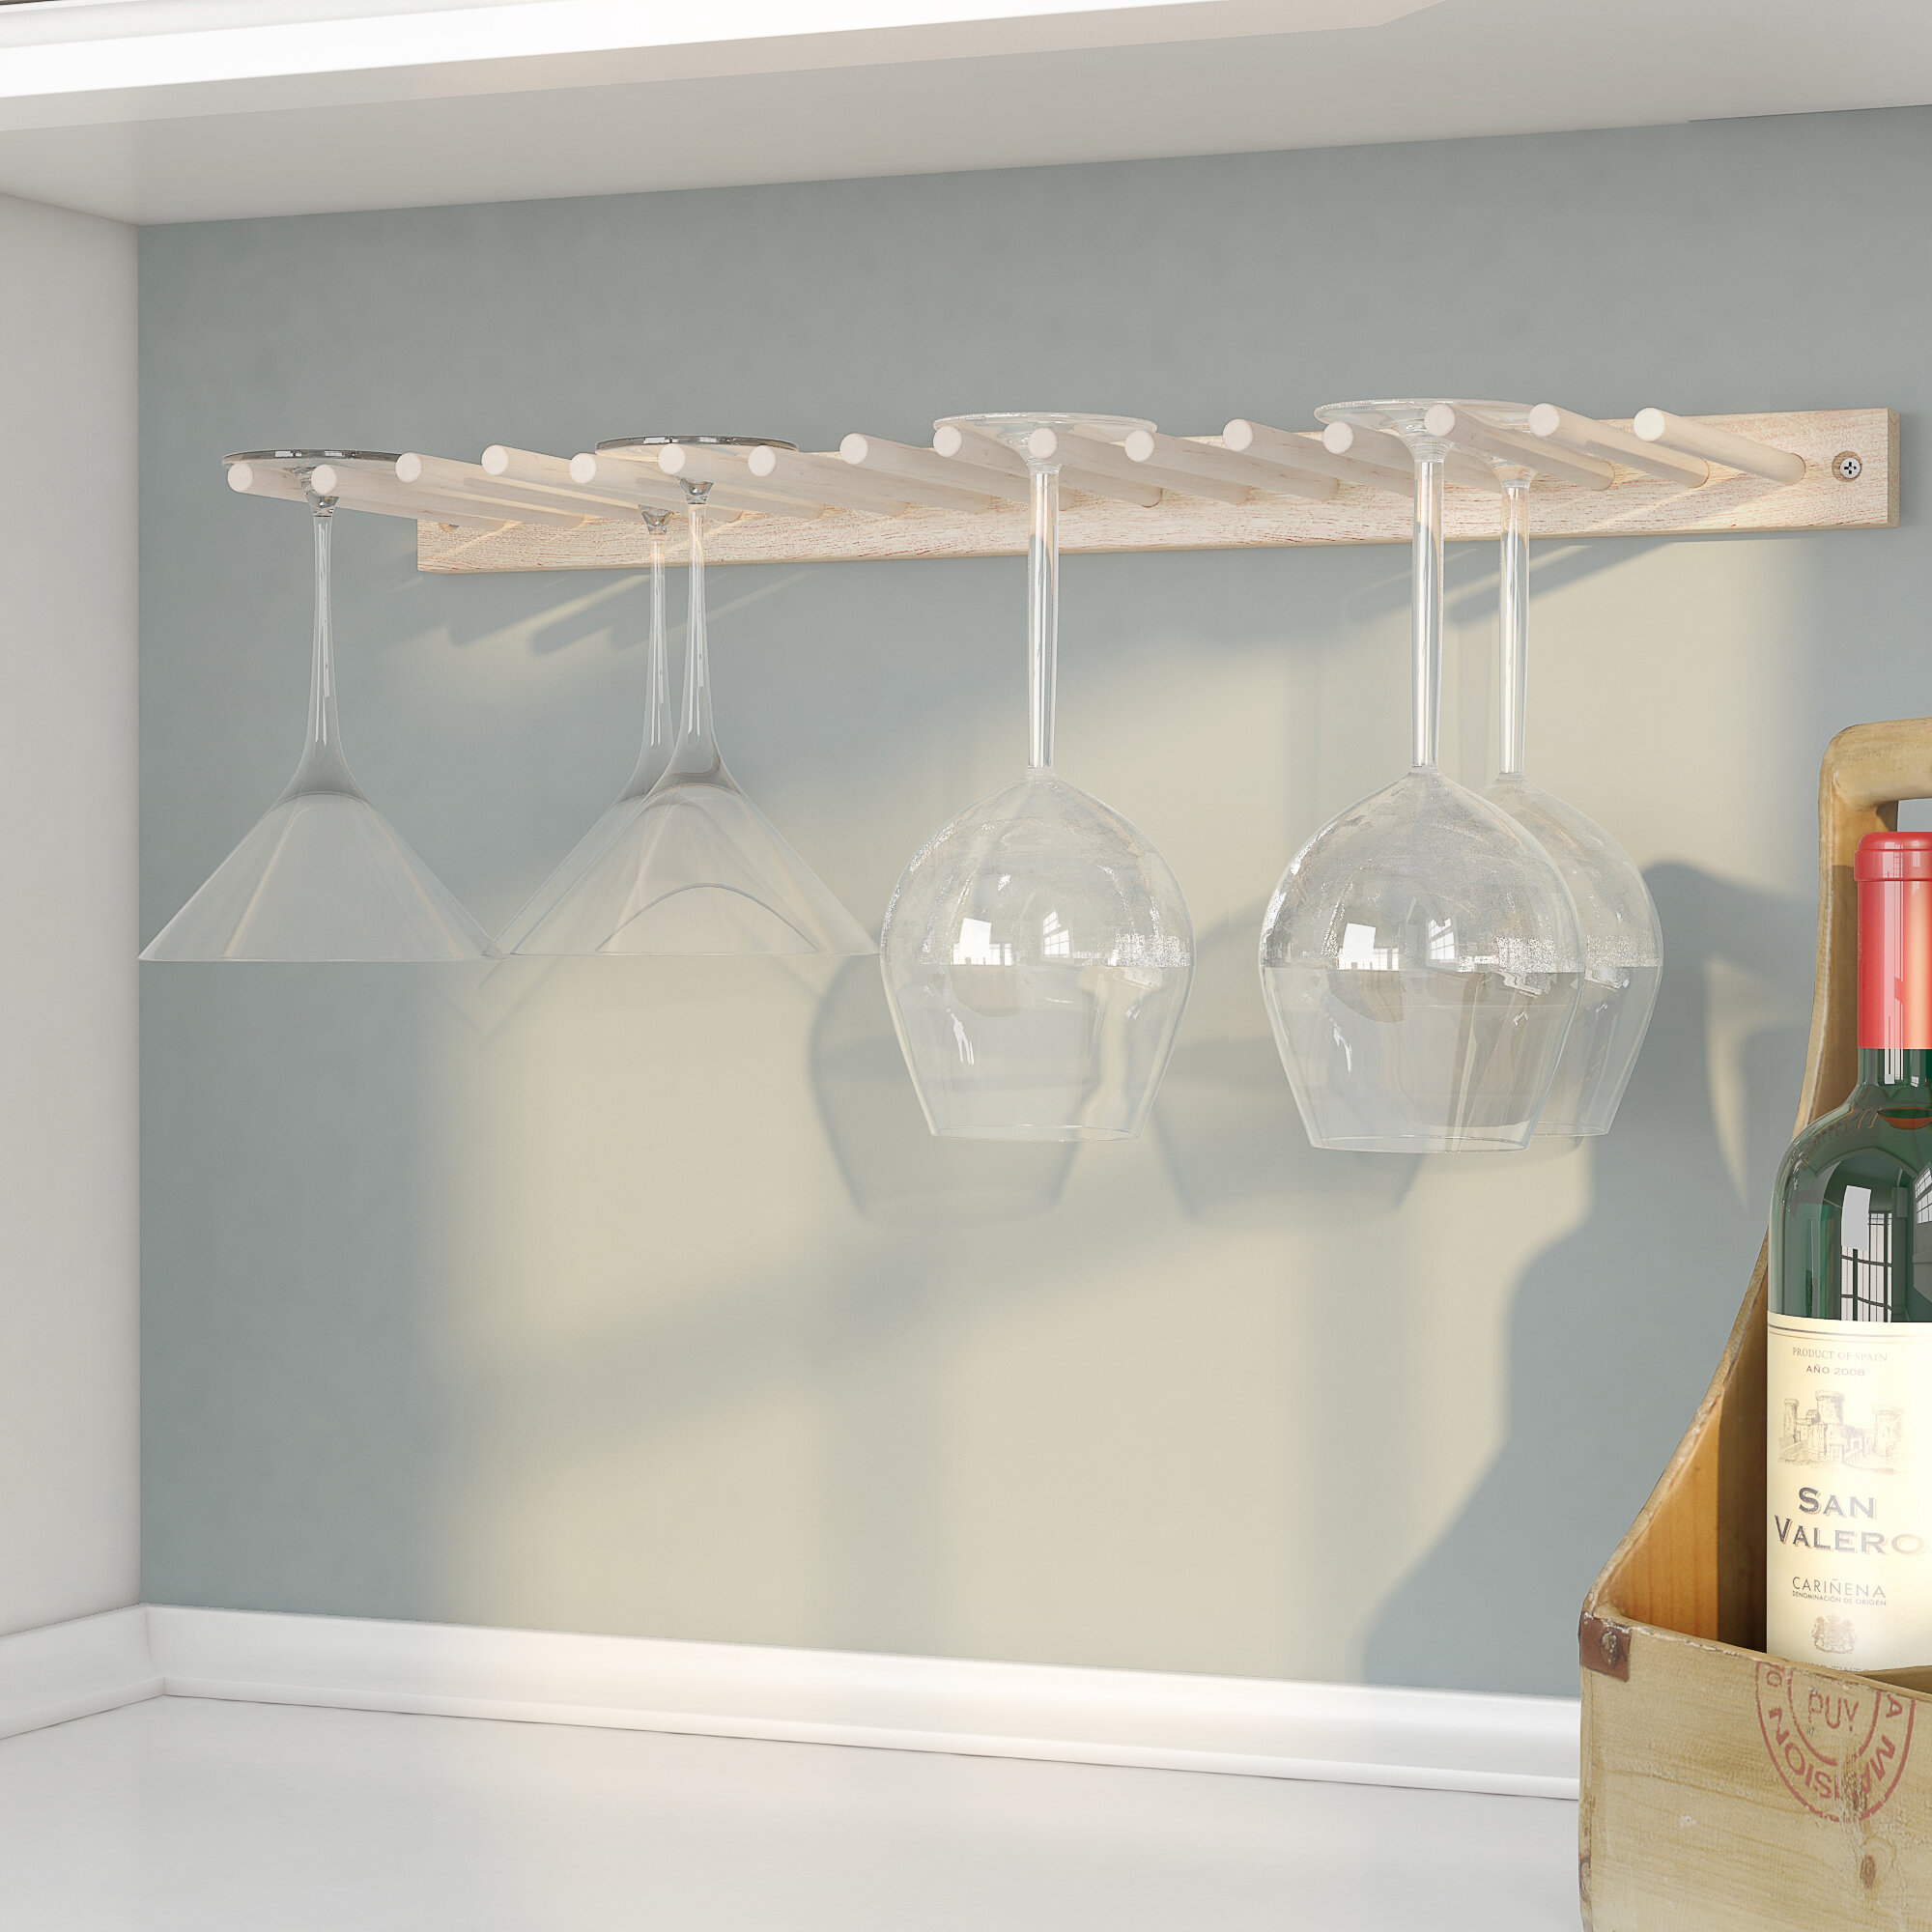 wall rack true fabrications foter stemware mounted glass explore bamboo